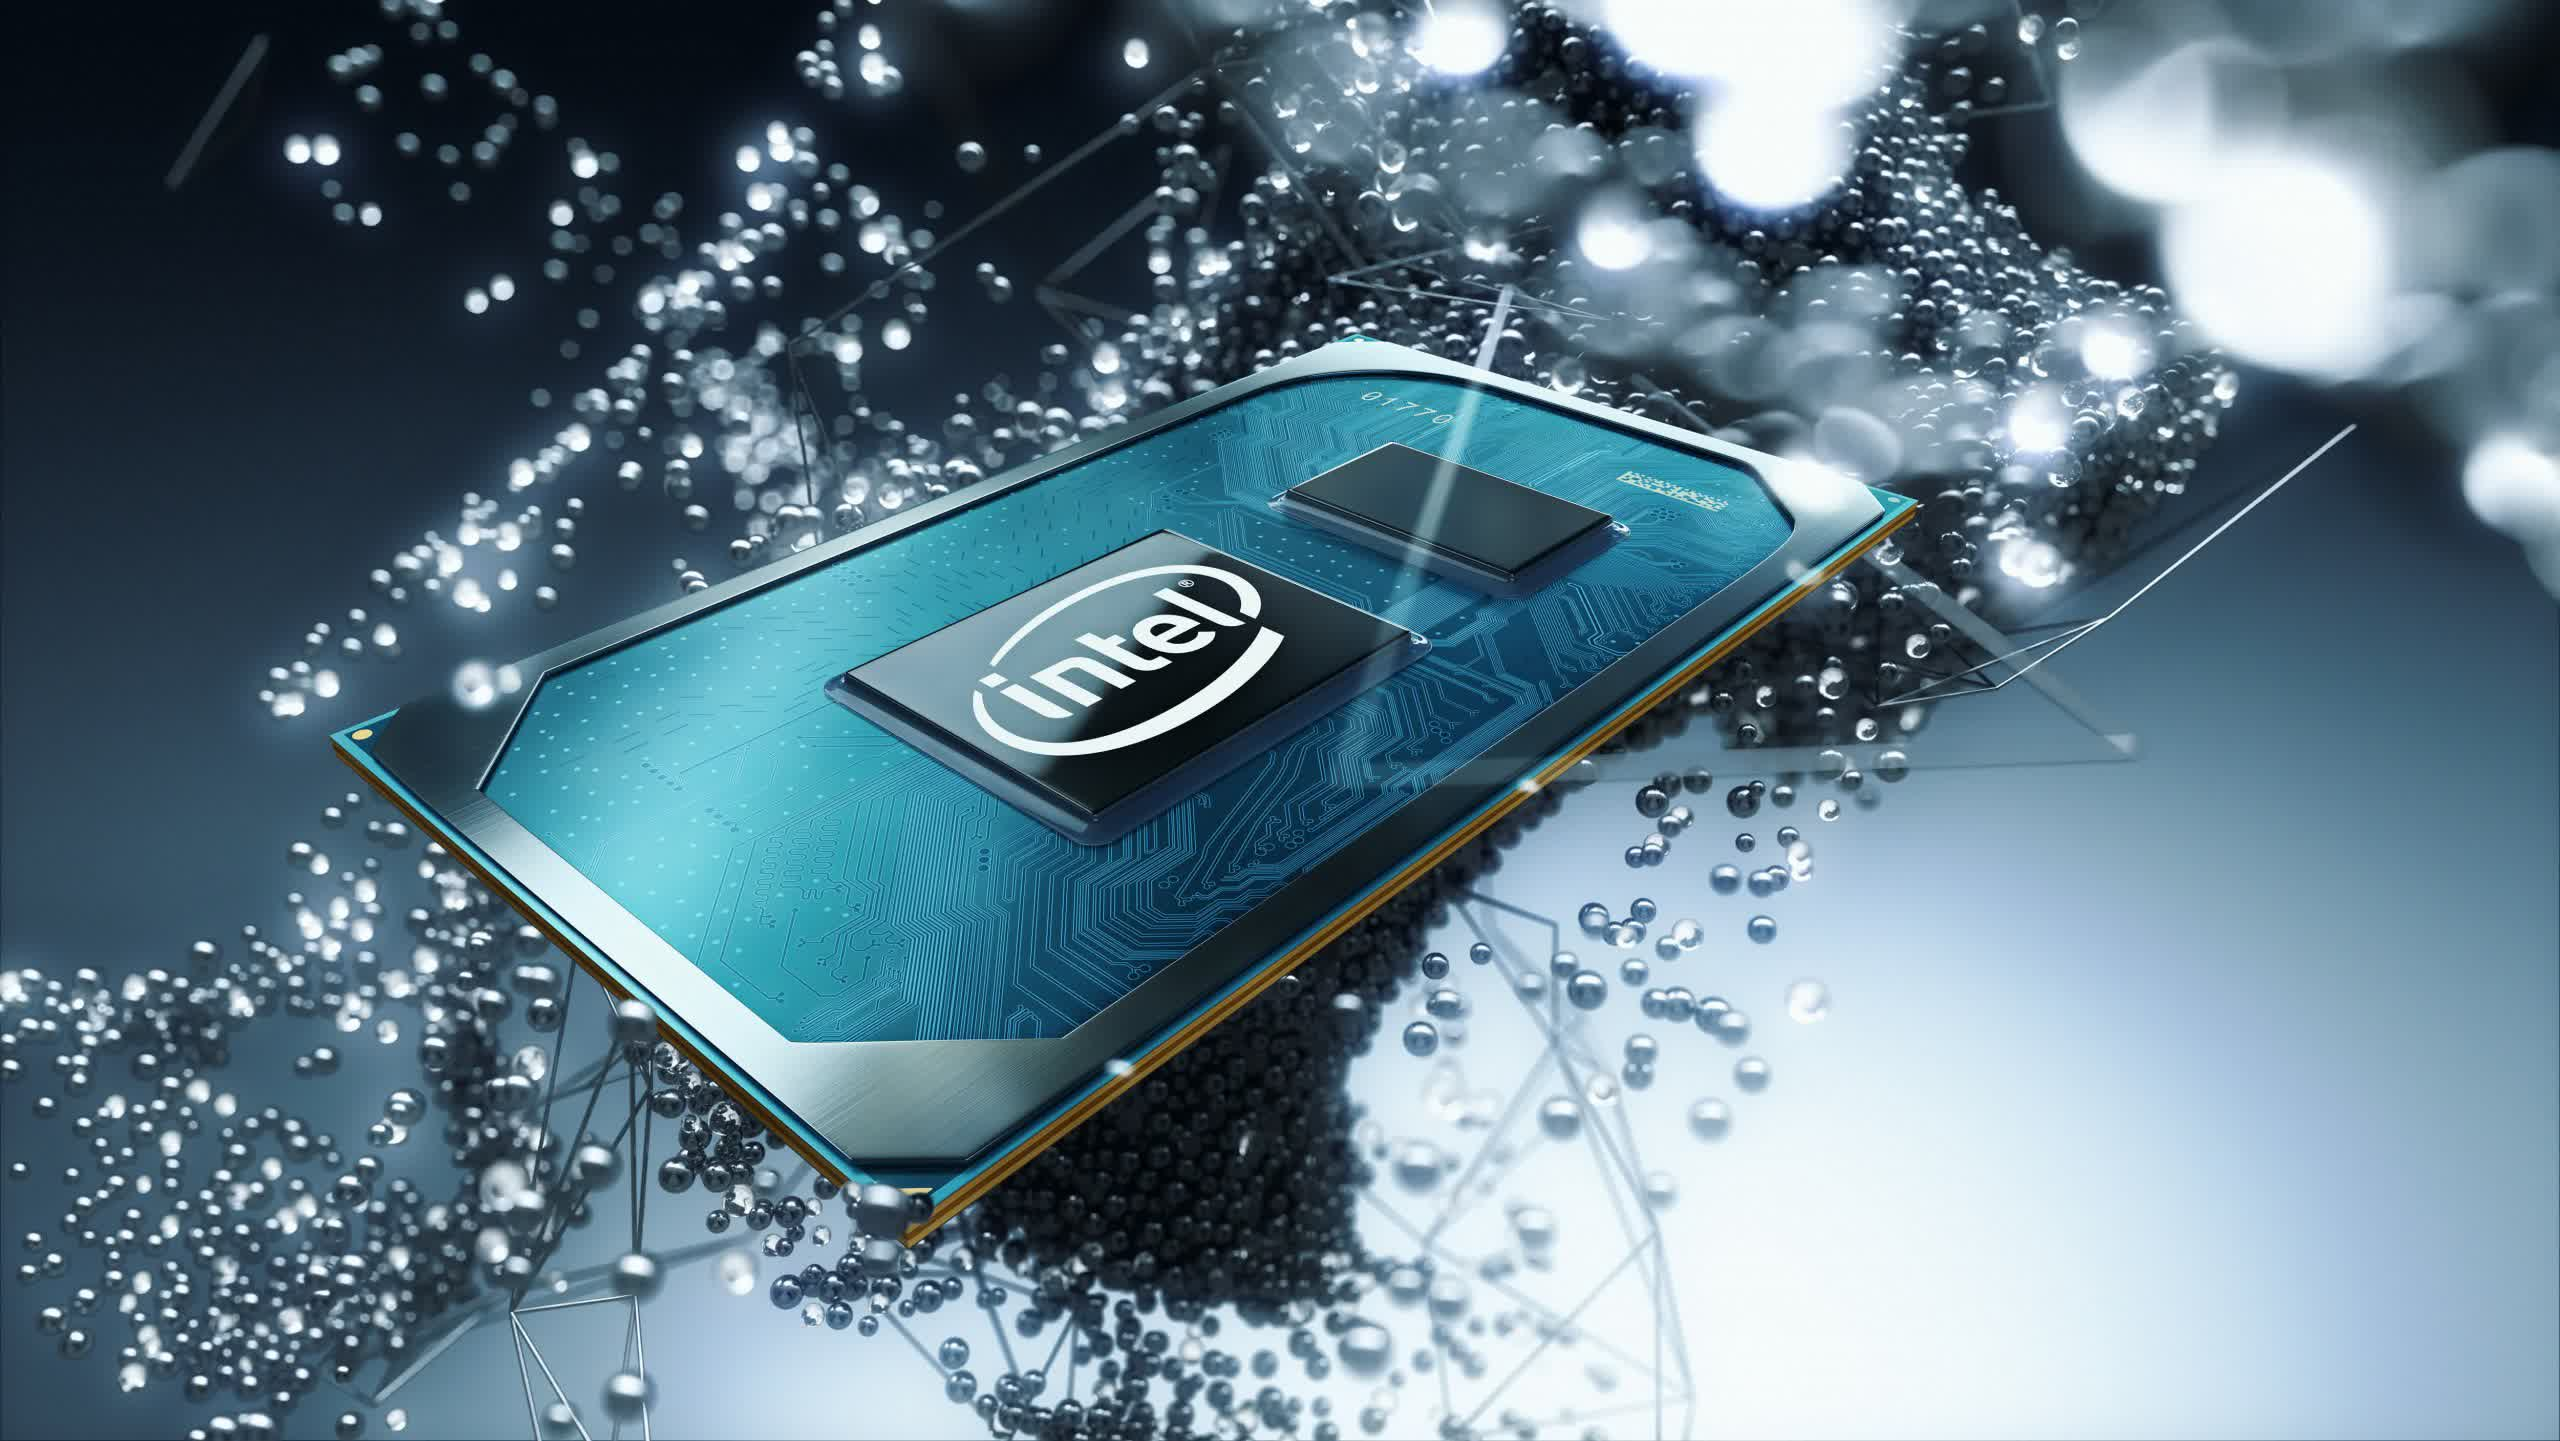 Intel refreshes 11th-gen Core mobile lineup with the Core i7-1195G7 and i5-1155G7 CPUs